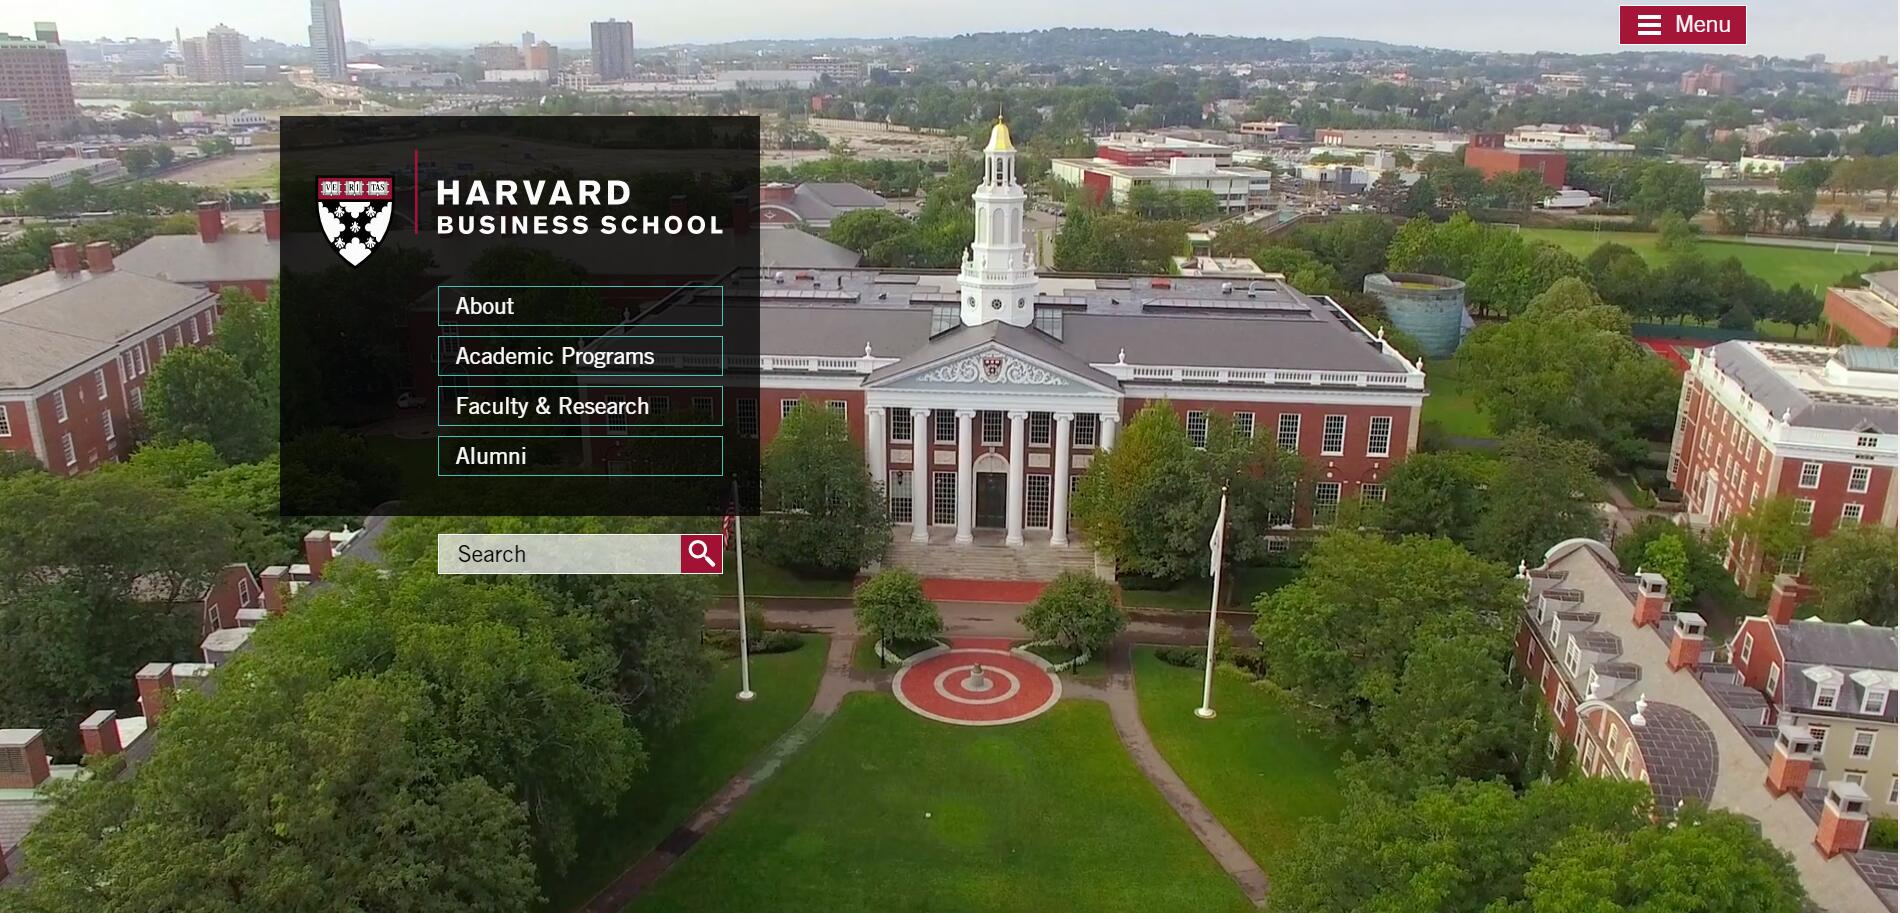 The Business School at Harvard University